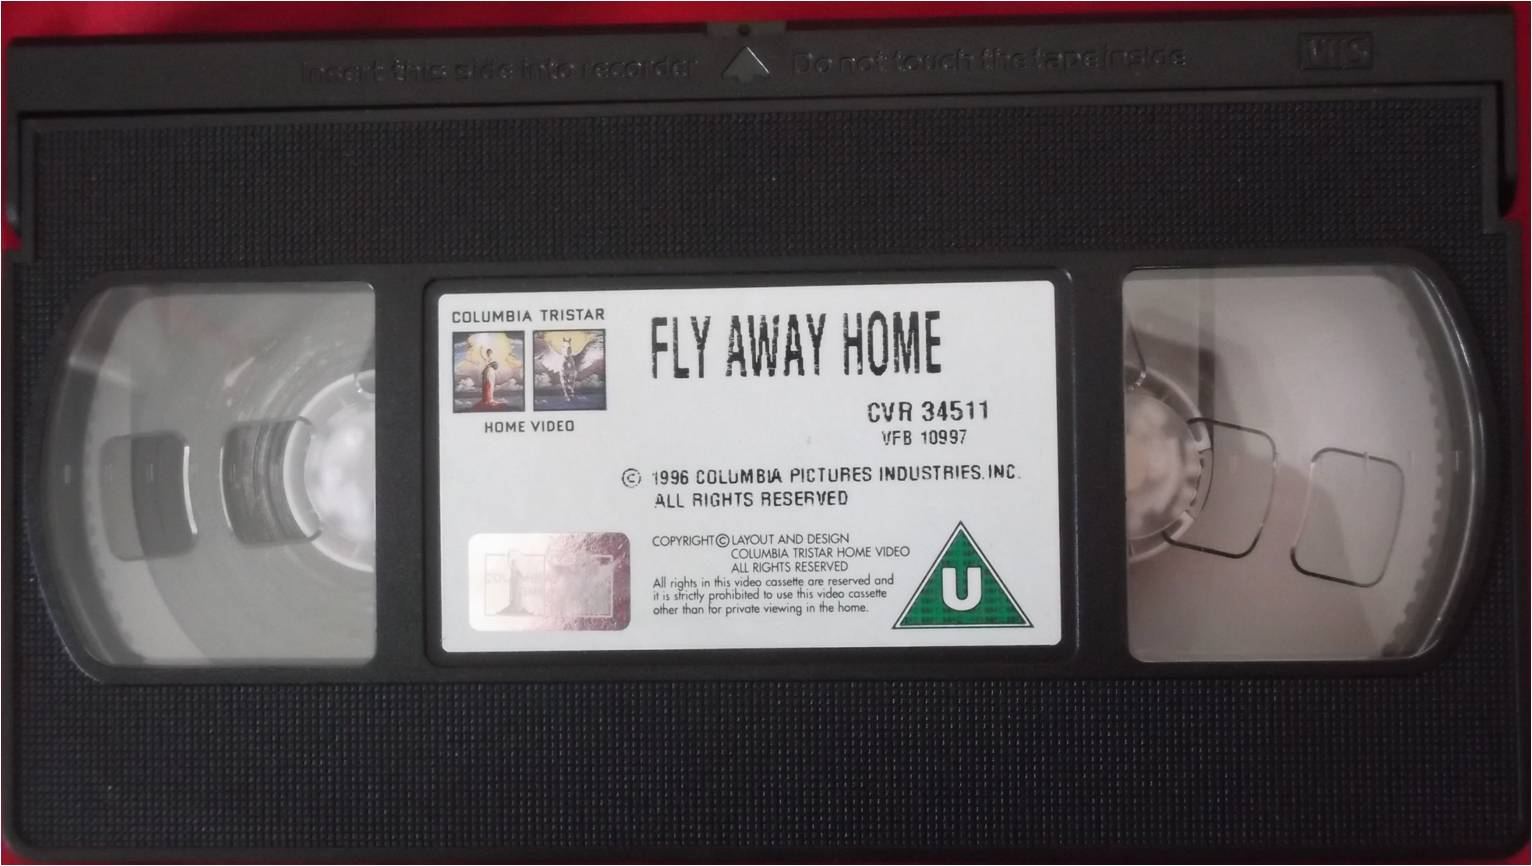 Columbia TriStar Home Video 1997 VHS Tape Example